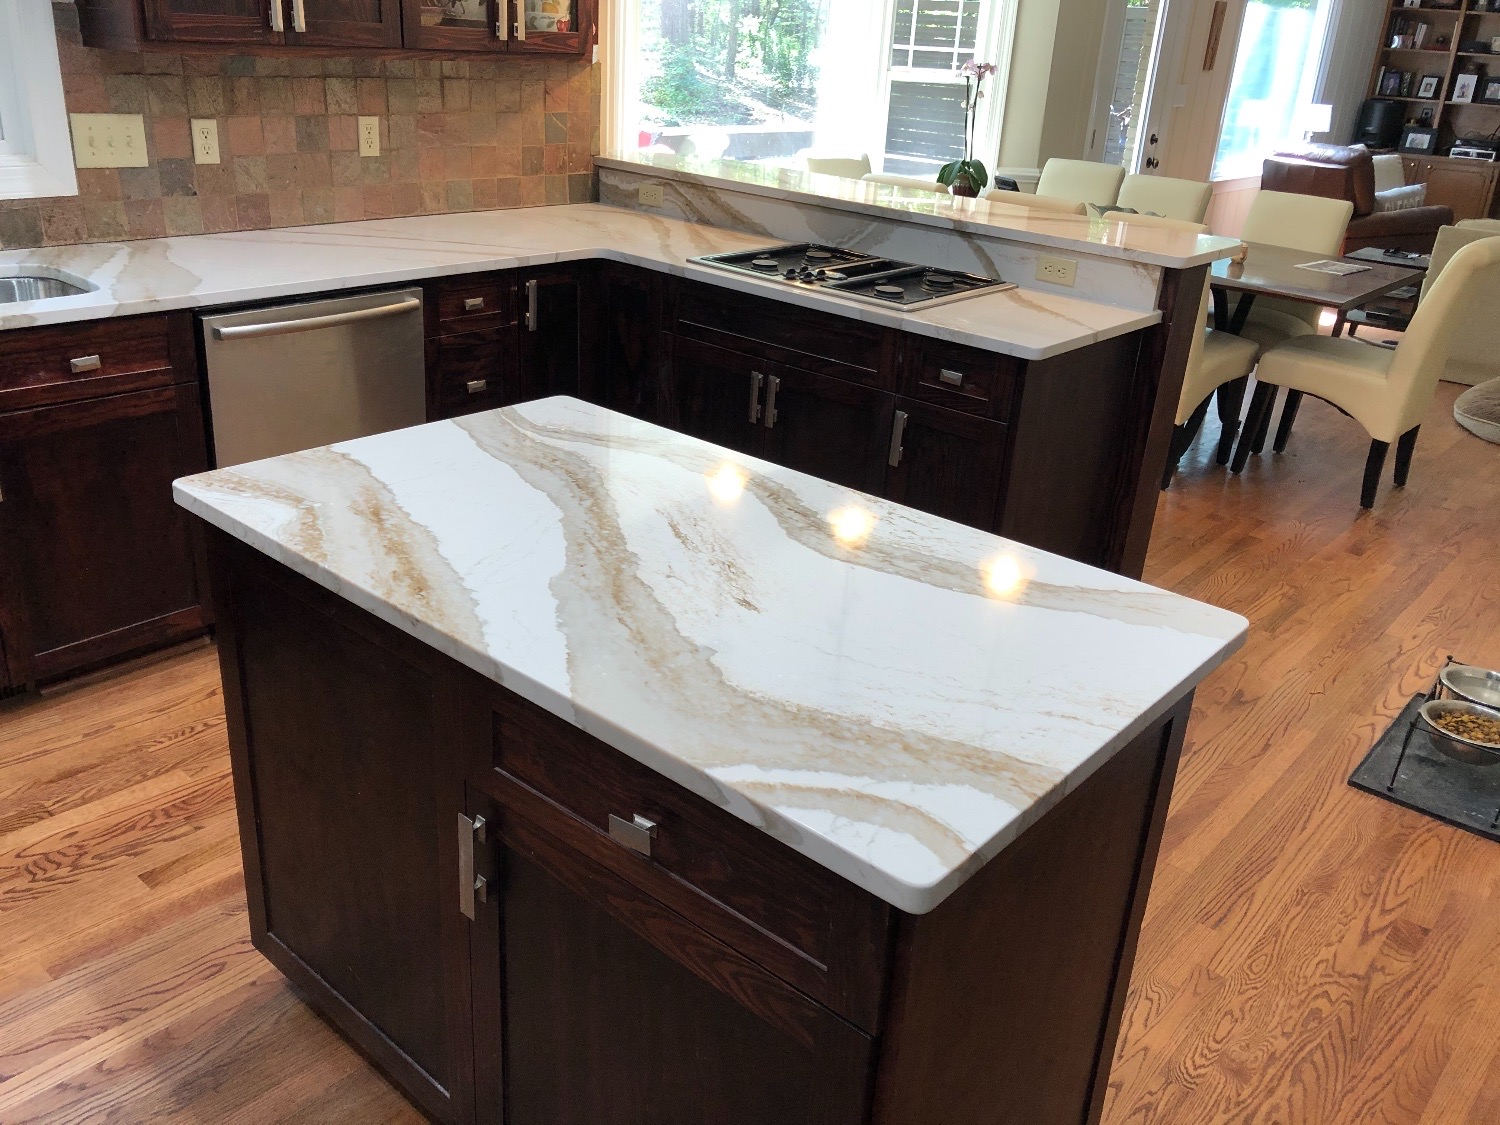 Brittanica Gold Quartz kitchen island counter